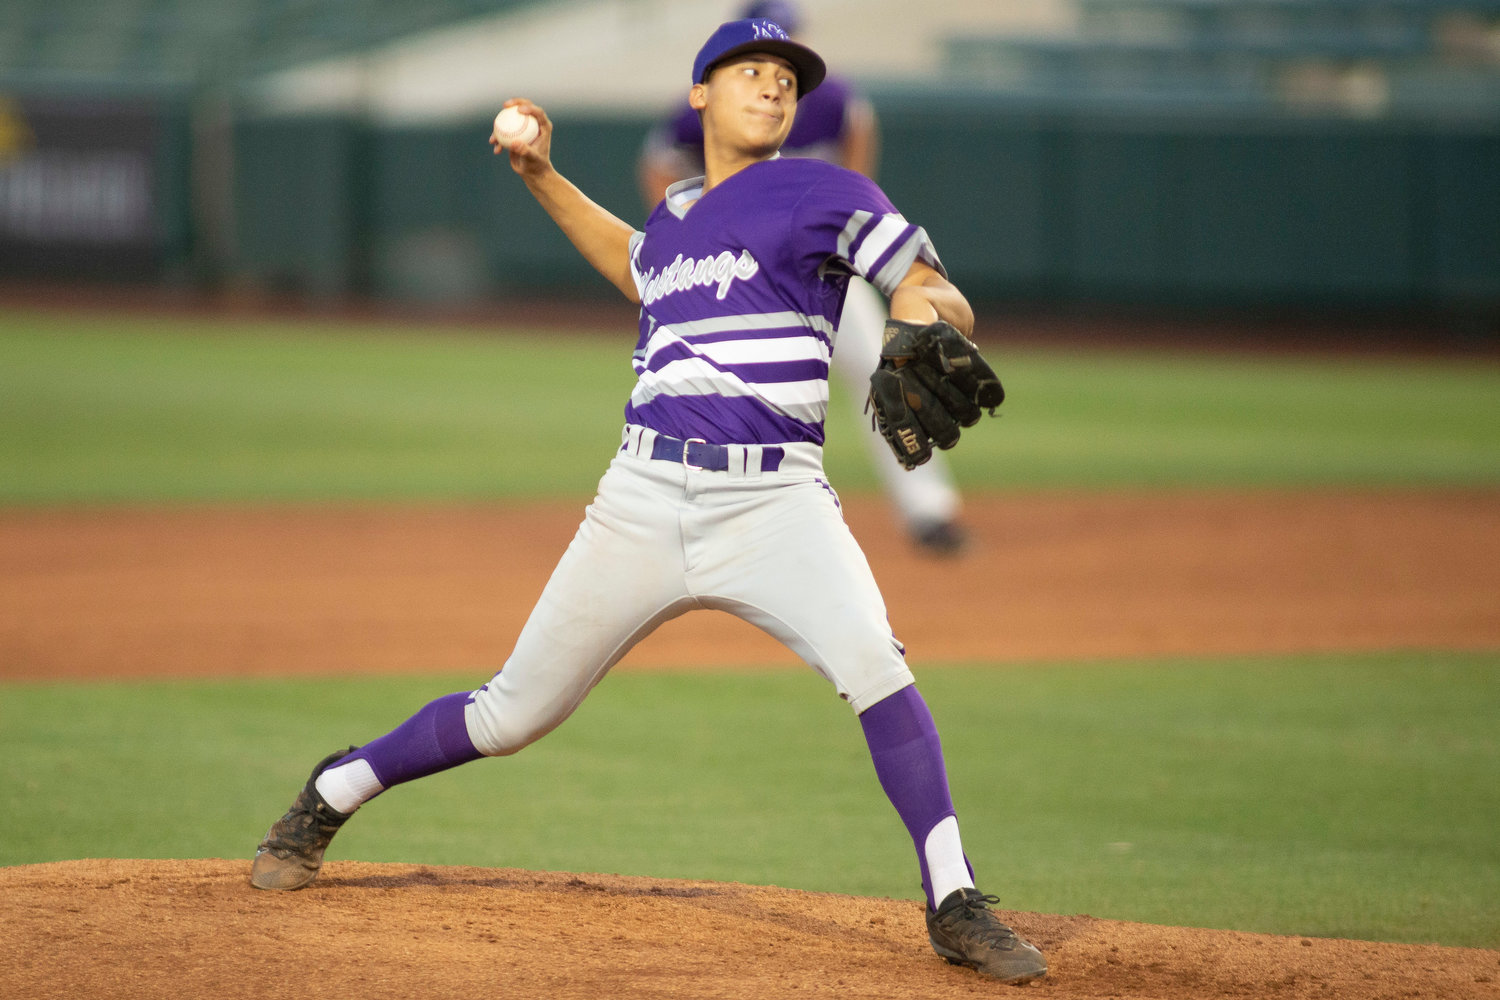 Sunrise Mountain's Alex Ramirez throws a pitch against Desert Mountain on Monday, May 6, 2019 at Tempe Diablo Stadium in Tempe. Coach Michael Deardoff said in the short 2020 season the junior became the Mustangs' No. 1 starter.